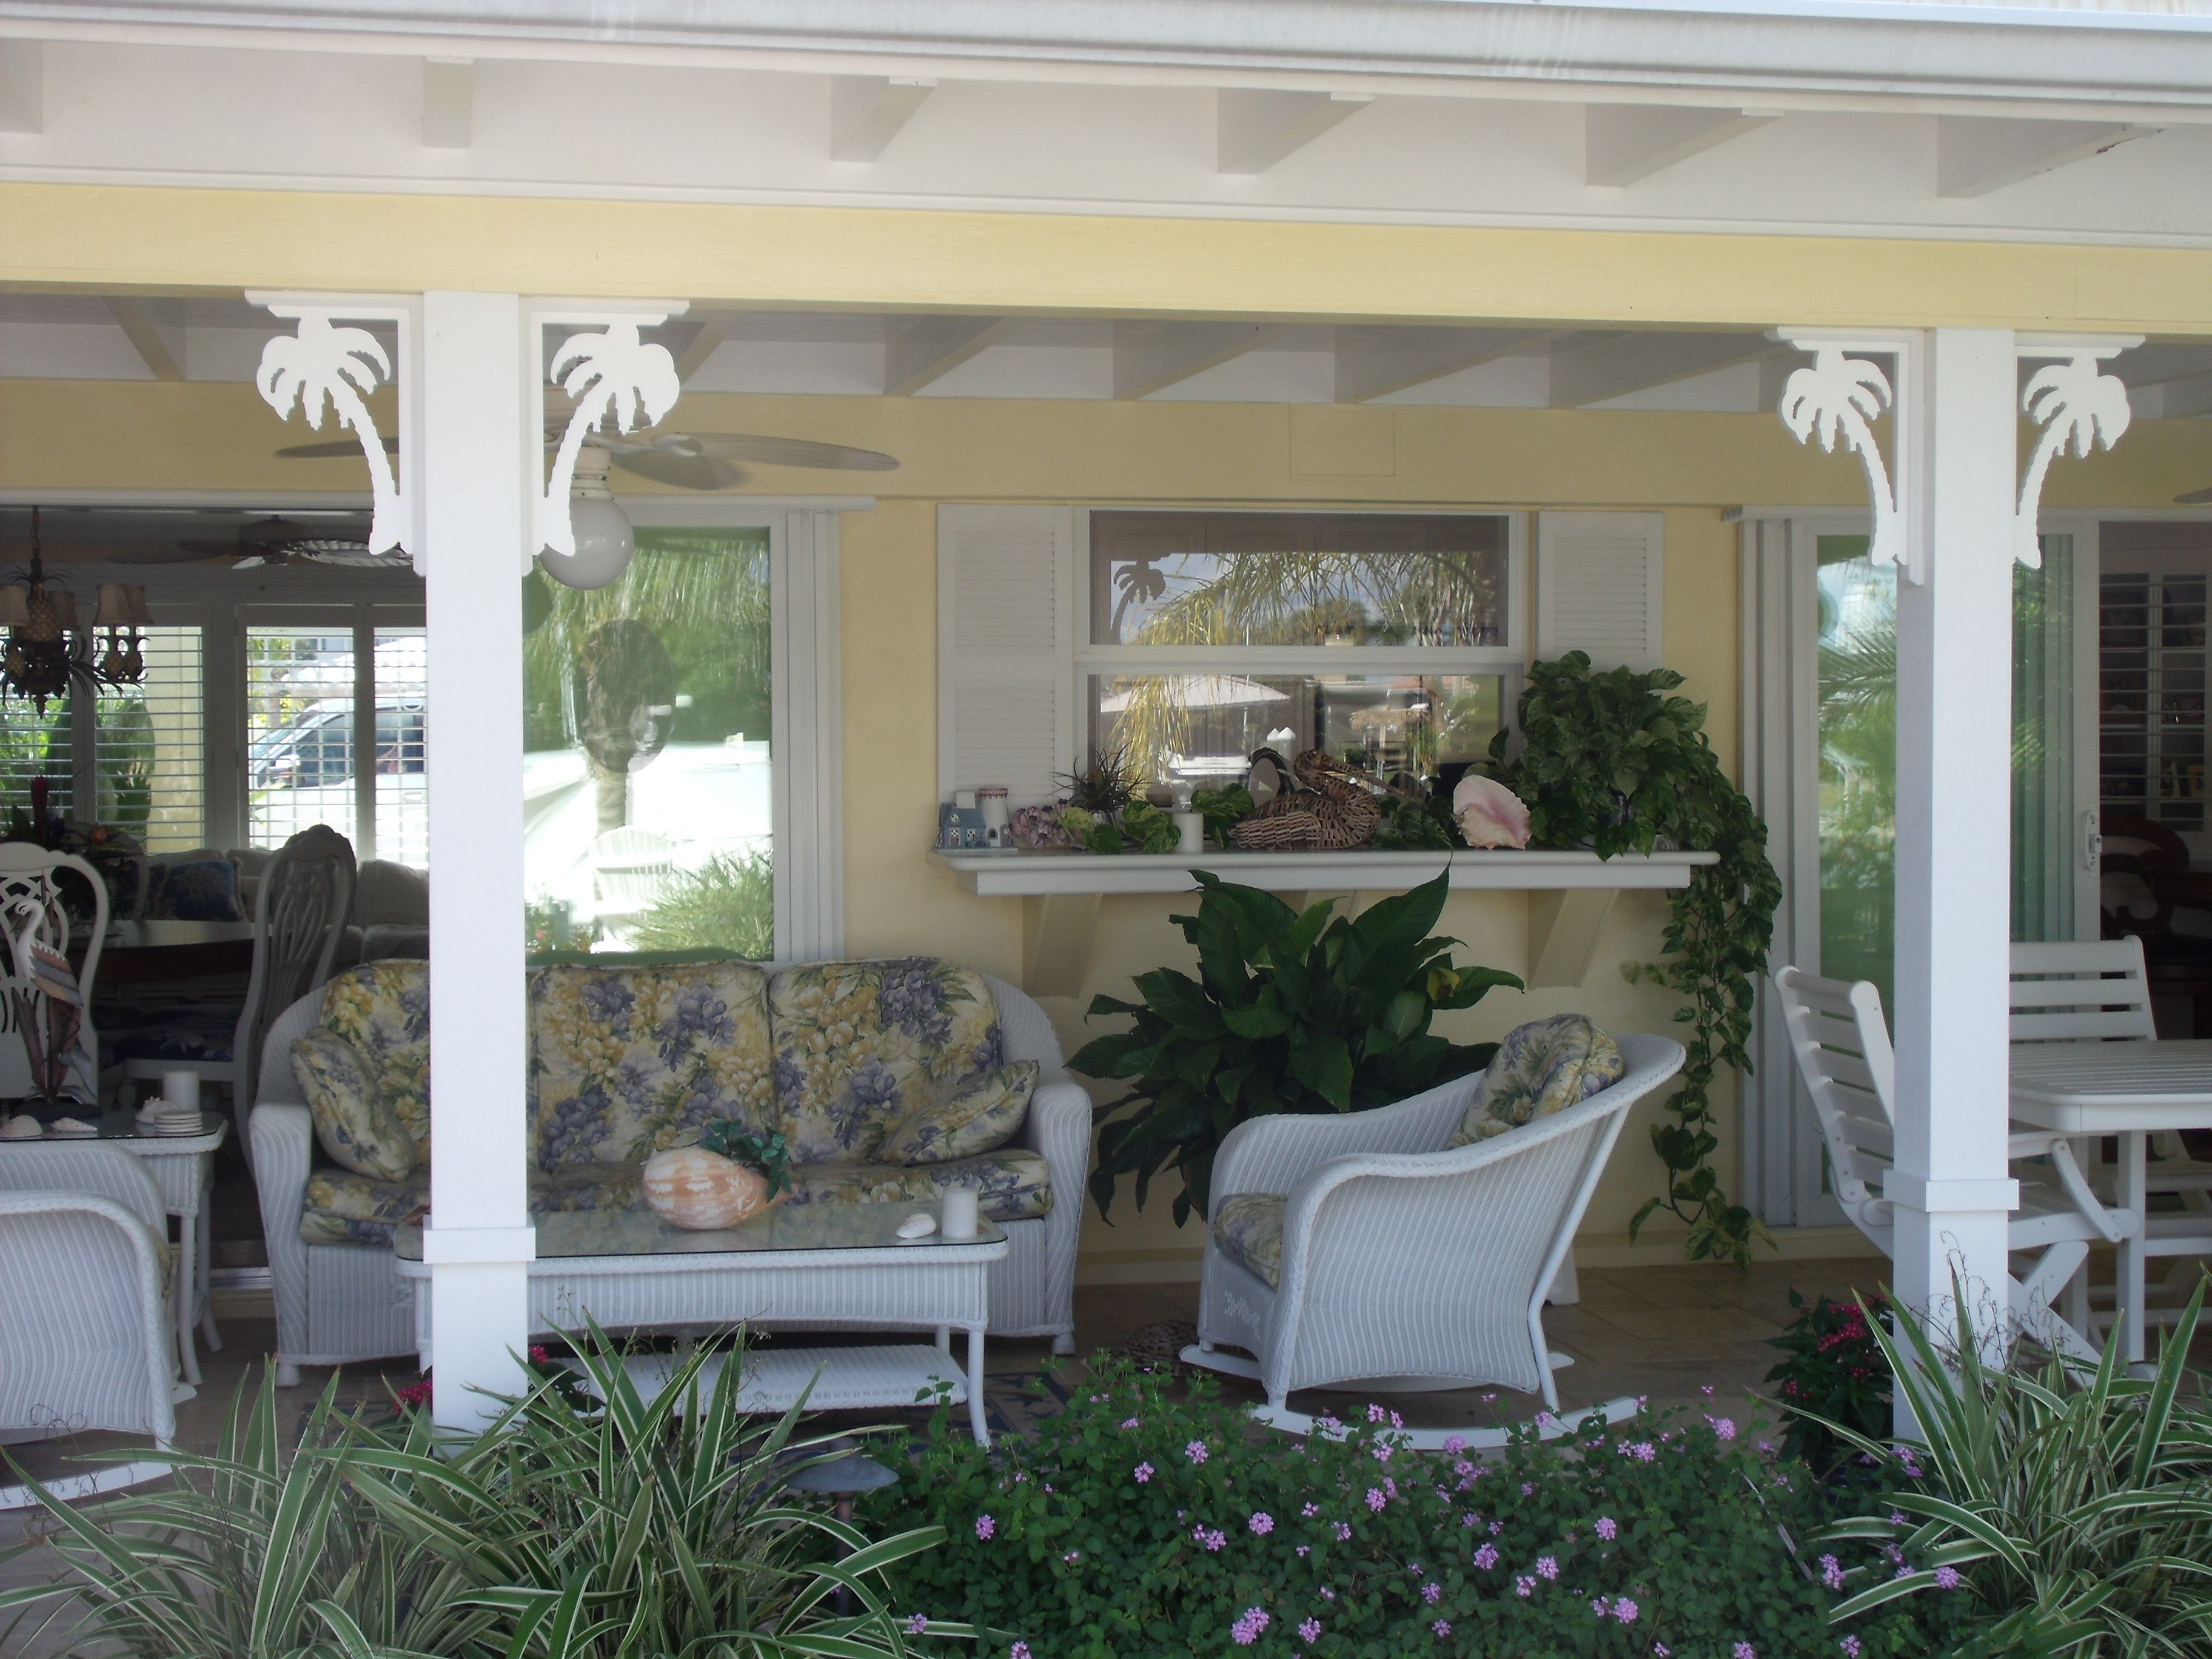 brackets bracket pergola patio extenda open outdoor roof porch price a to make how